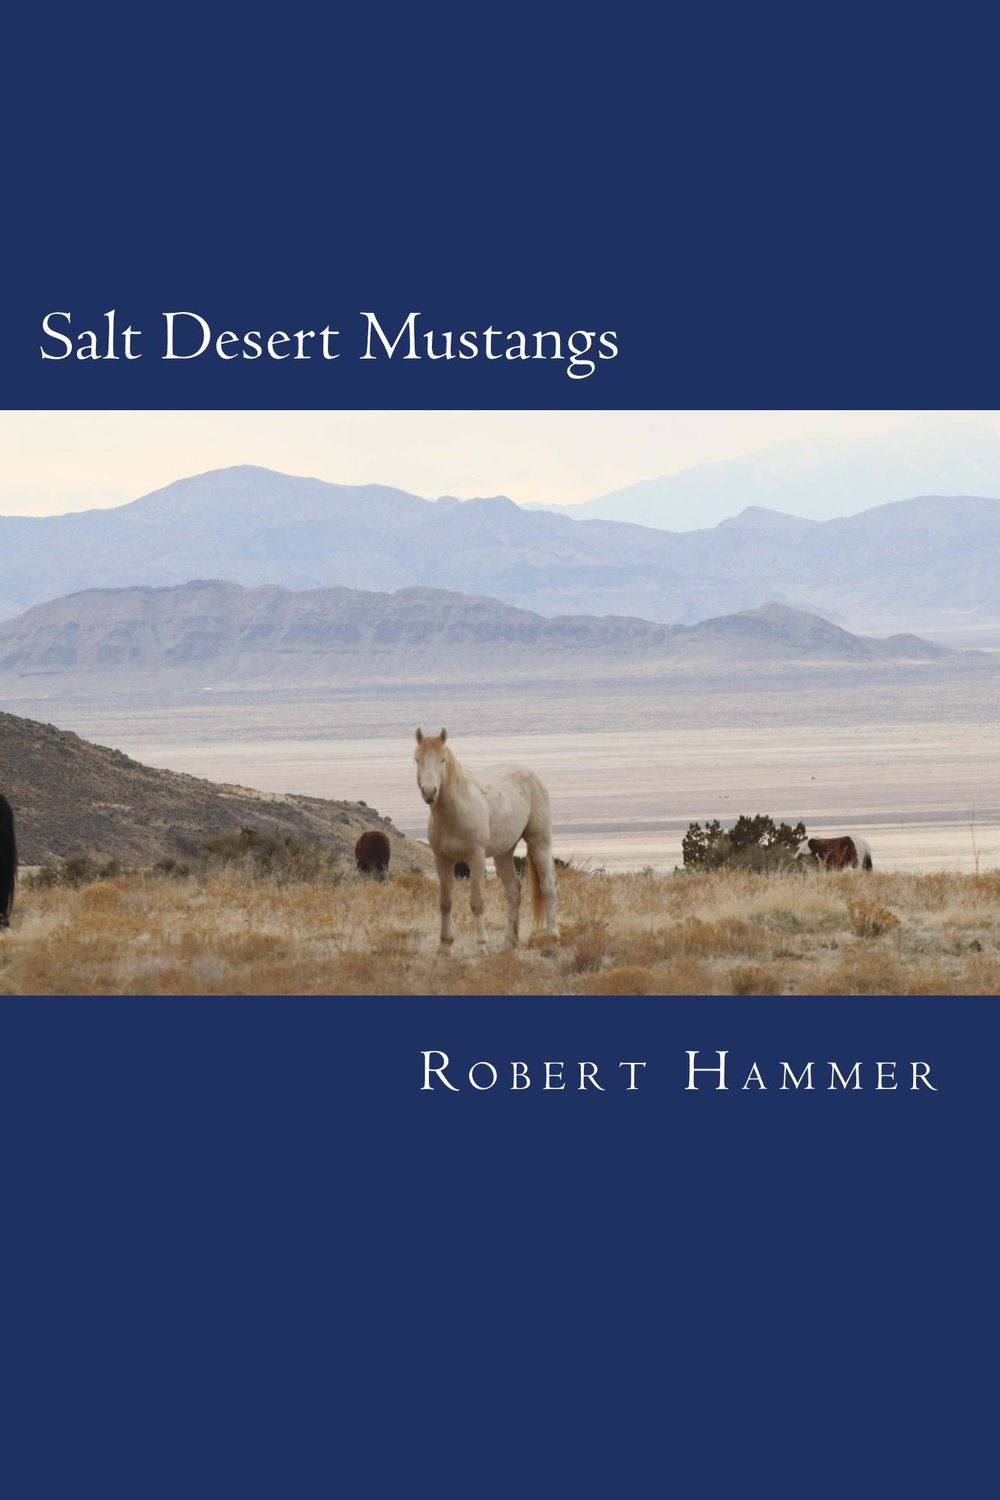 Available Now! - Salt Desert Mustangs: Discovering wild horses and historic trails in Tooele County, UtahWhat do Kit Carson, the Donner Party, Mark Twain, Dwight Eisenhower and the founder of the Indianapolis 500 have in common? They all tie into the history of the roads and trails crossing Tooele County, Utah. Explore the fascinating history of the region these magnificent horses continue to call home.80% of proceeds will be donated to the American Wild Horse Campaign. The remaining 20% will help keep this free web resource online.Click here to order your copy today!